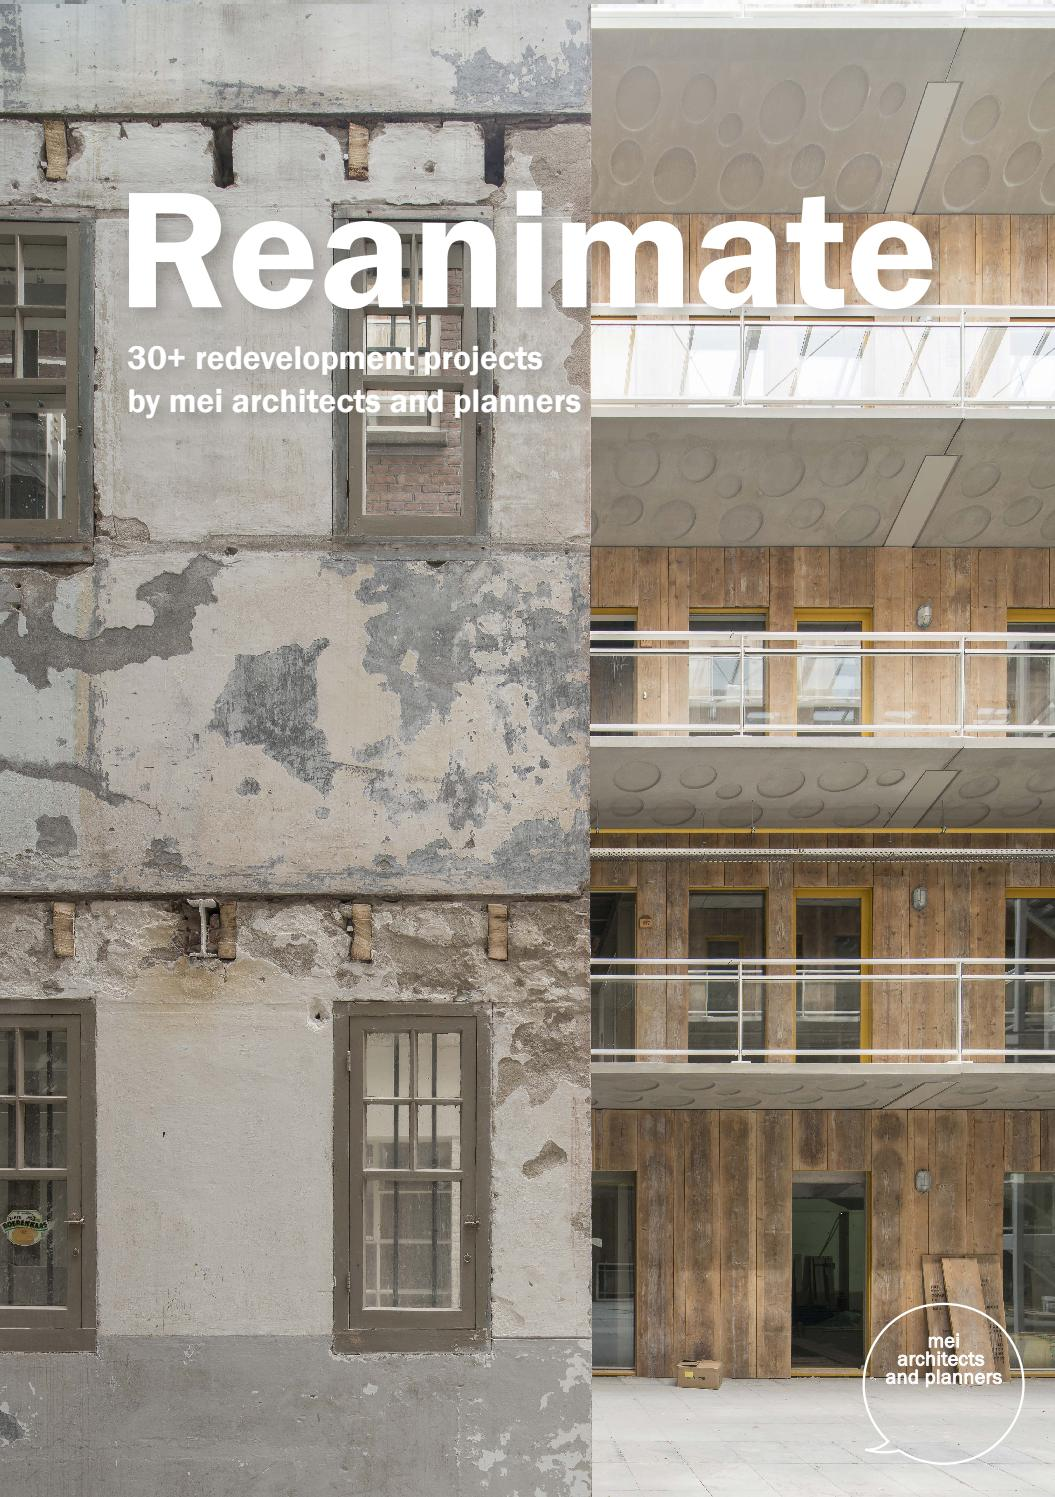 Tuinkas Pro Serre 3 Reanimate 30 Redevelopment Projects